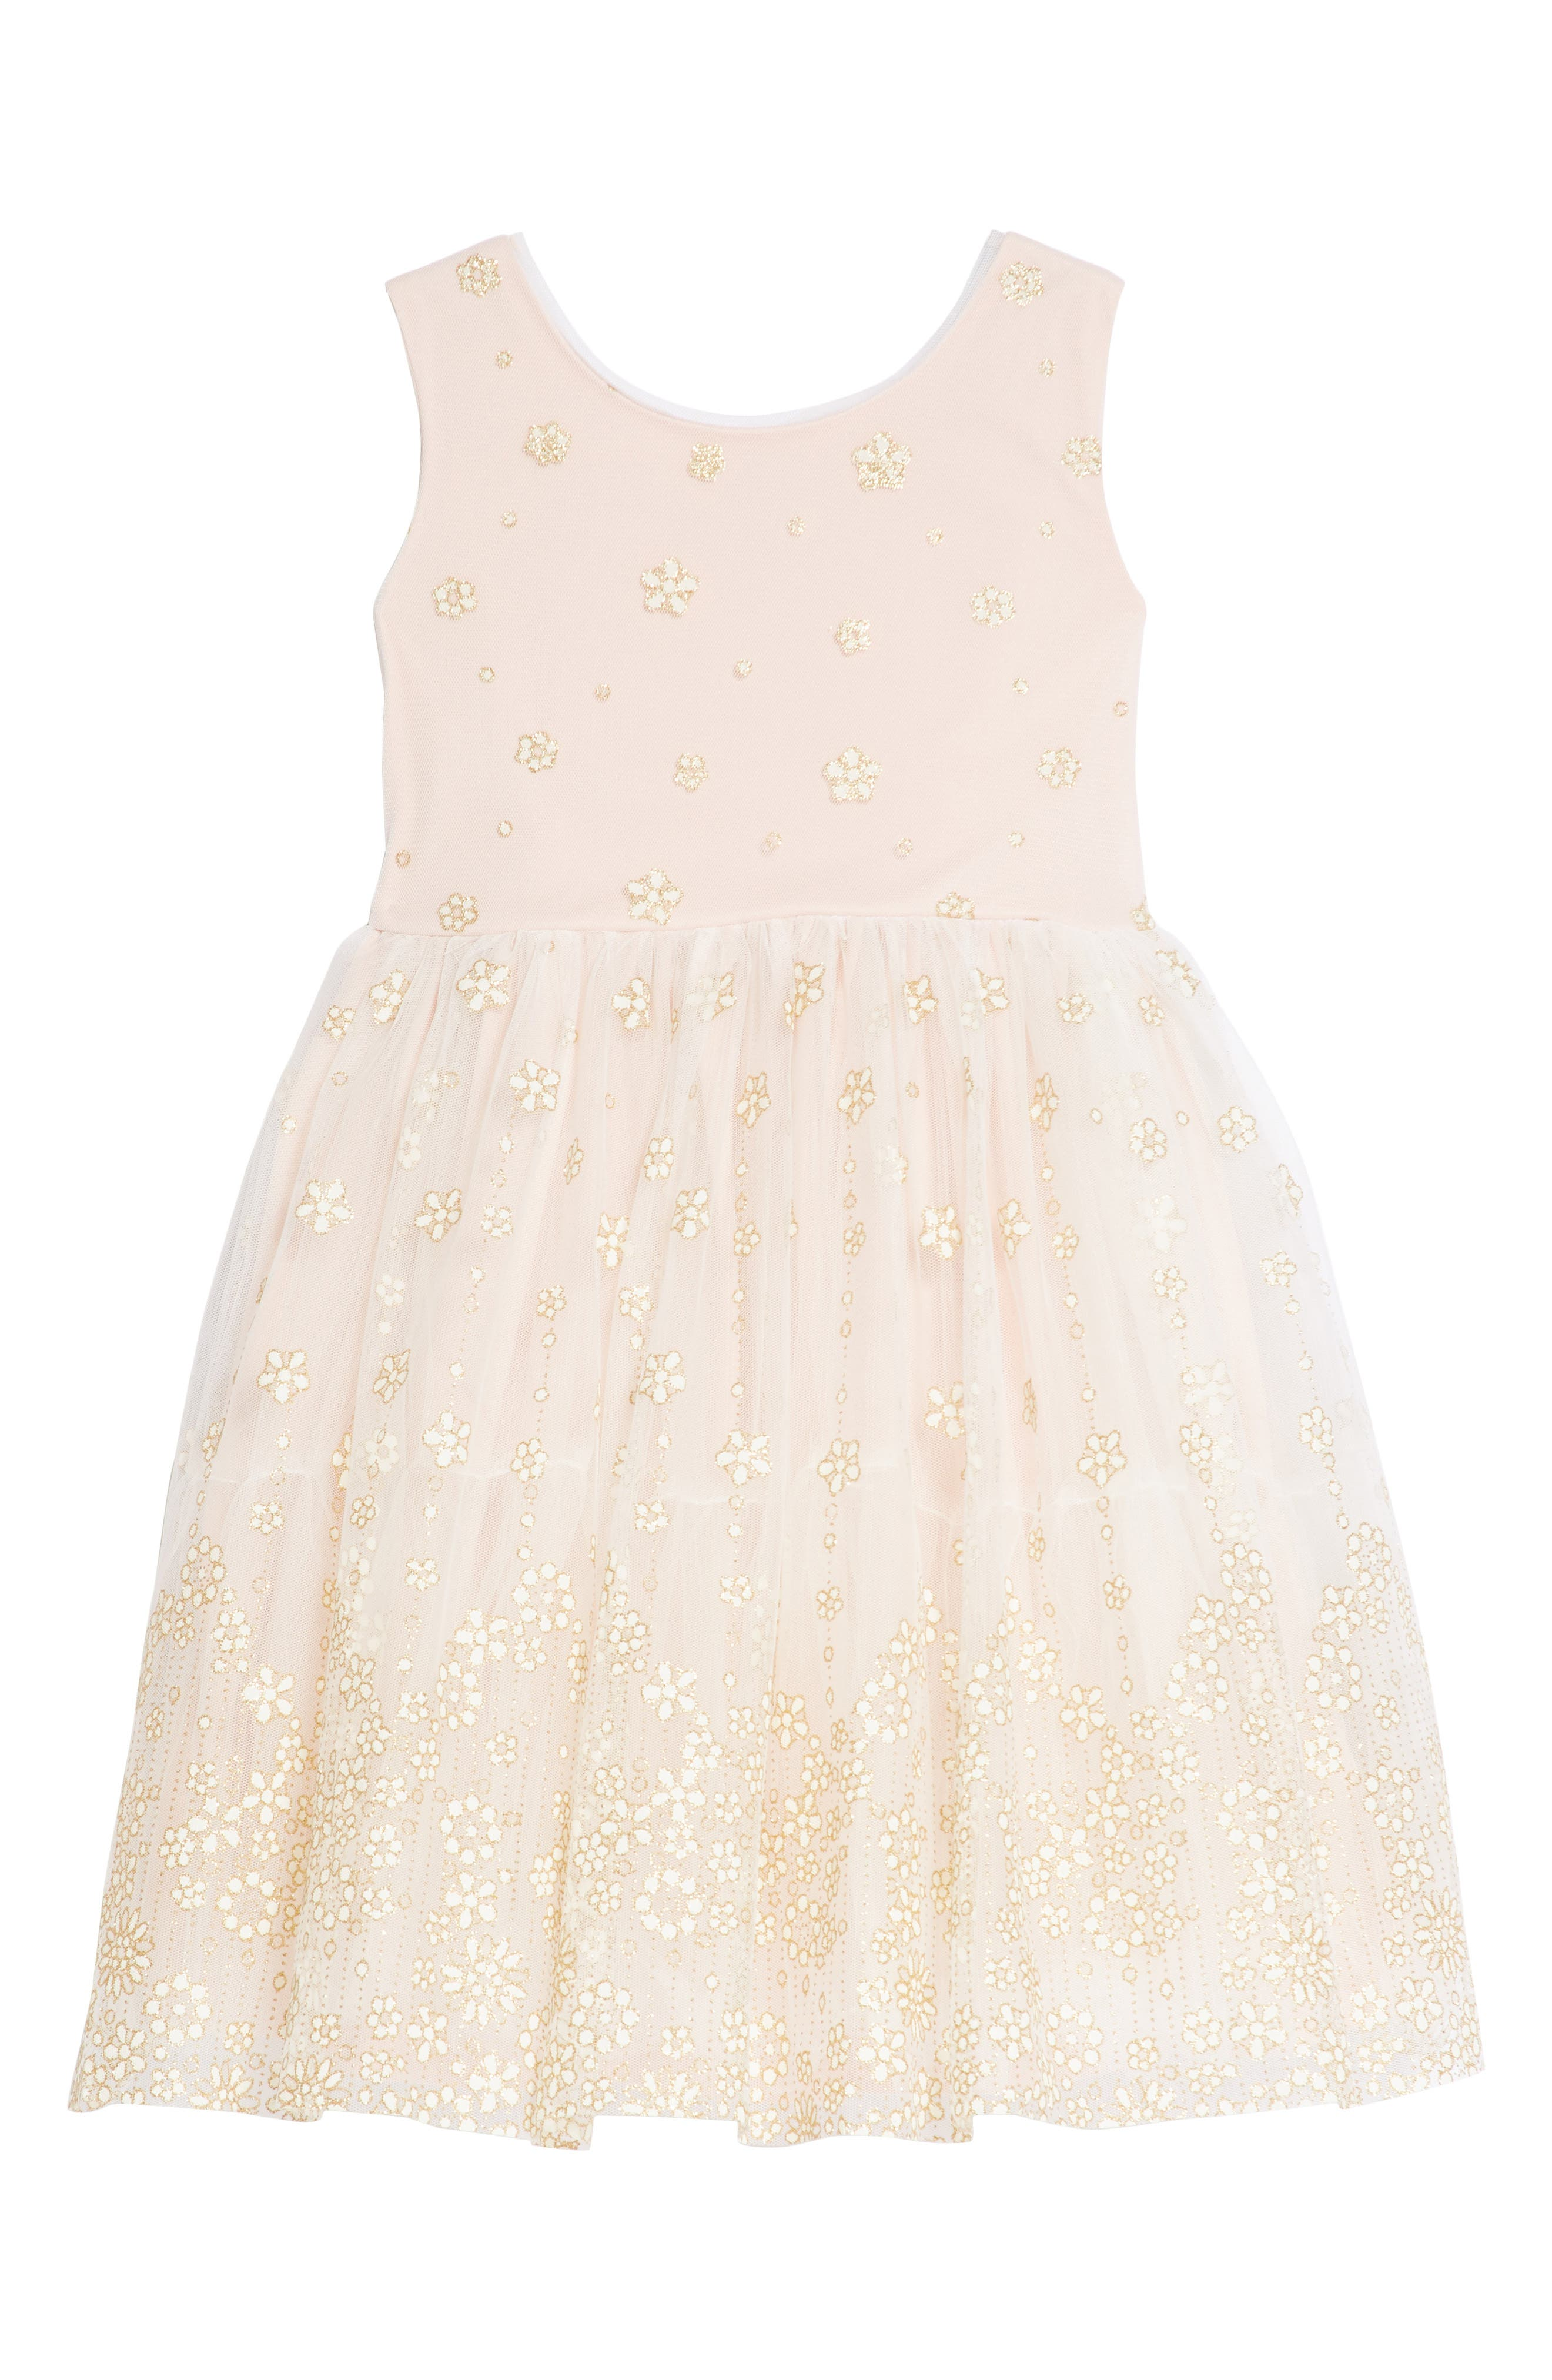 Glitter Mesh Tulle Dress,                         Main,                         color, Ivory/ Pink